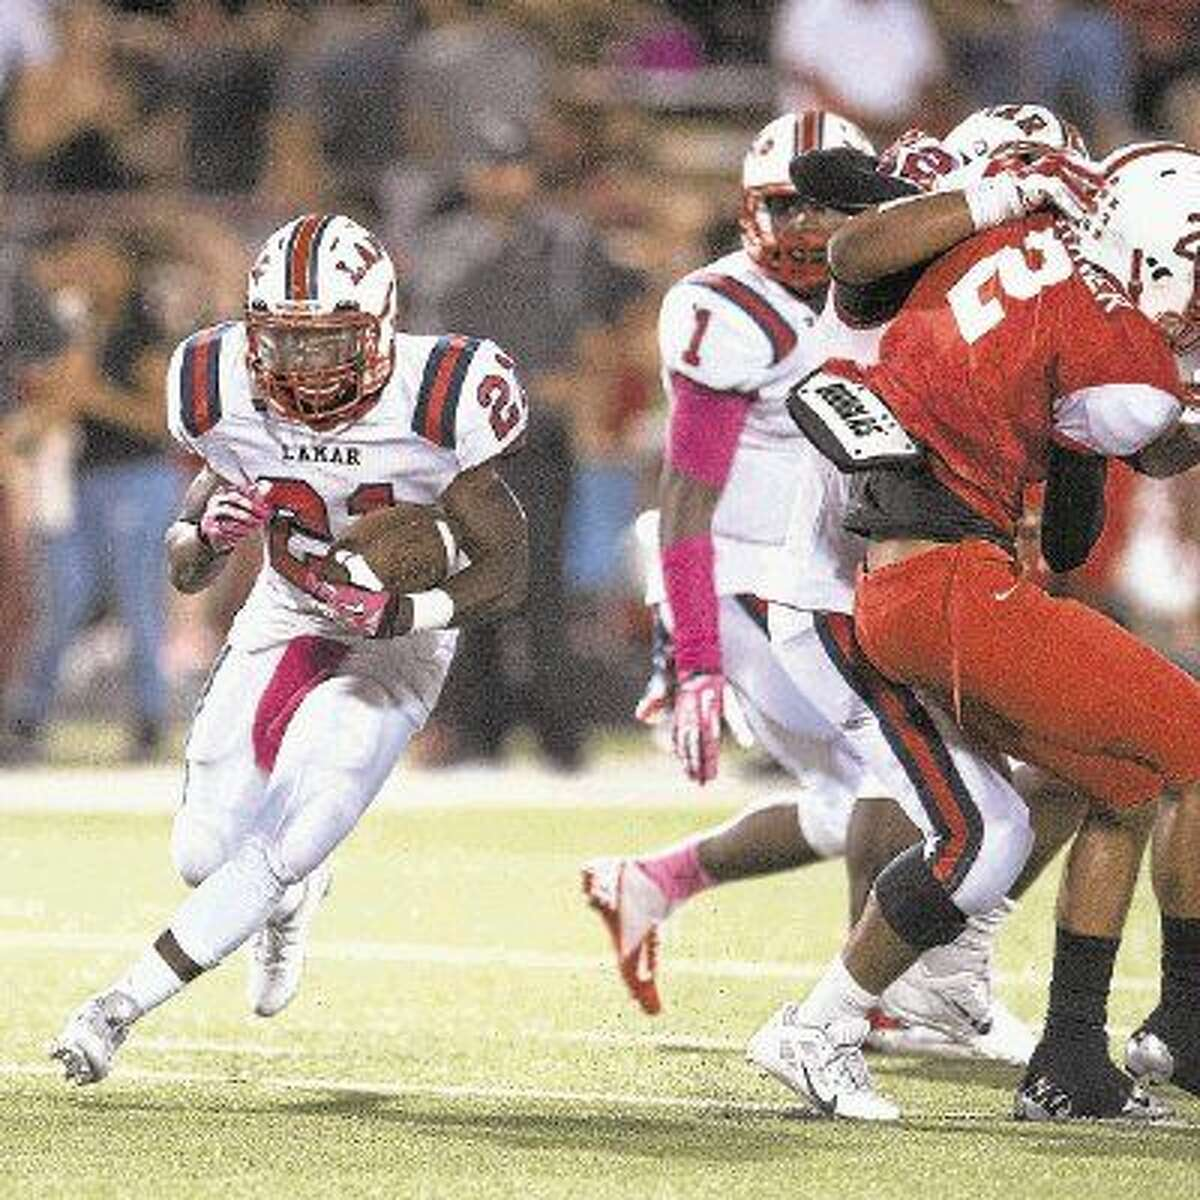 Lamar running back Ronnie Wesley looks for some room to run during a recent Texans victory. Lamar, along with Bellaire, will open up 6A Division I playoff action this week when both teams go to Katy to play their opening-round games. The Texans take on Seven Lakes while Bellaire will face Cinco Ranch for the third consecutive year.